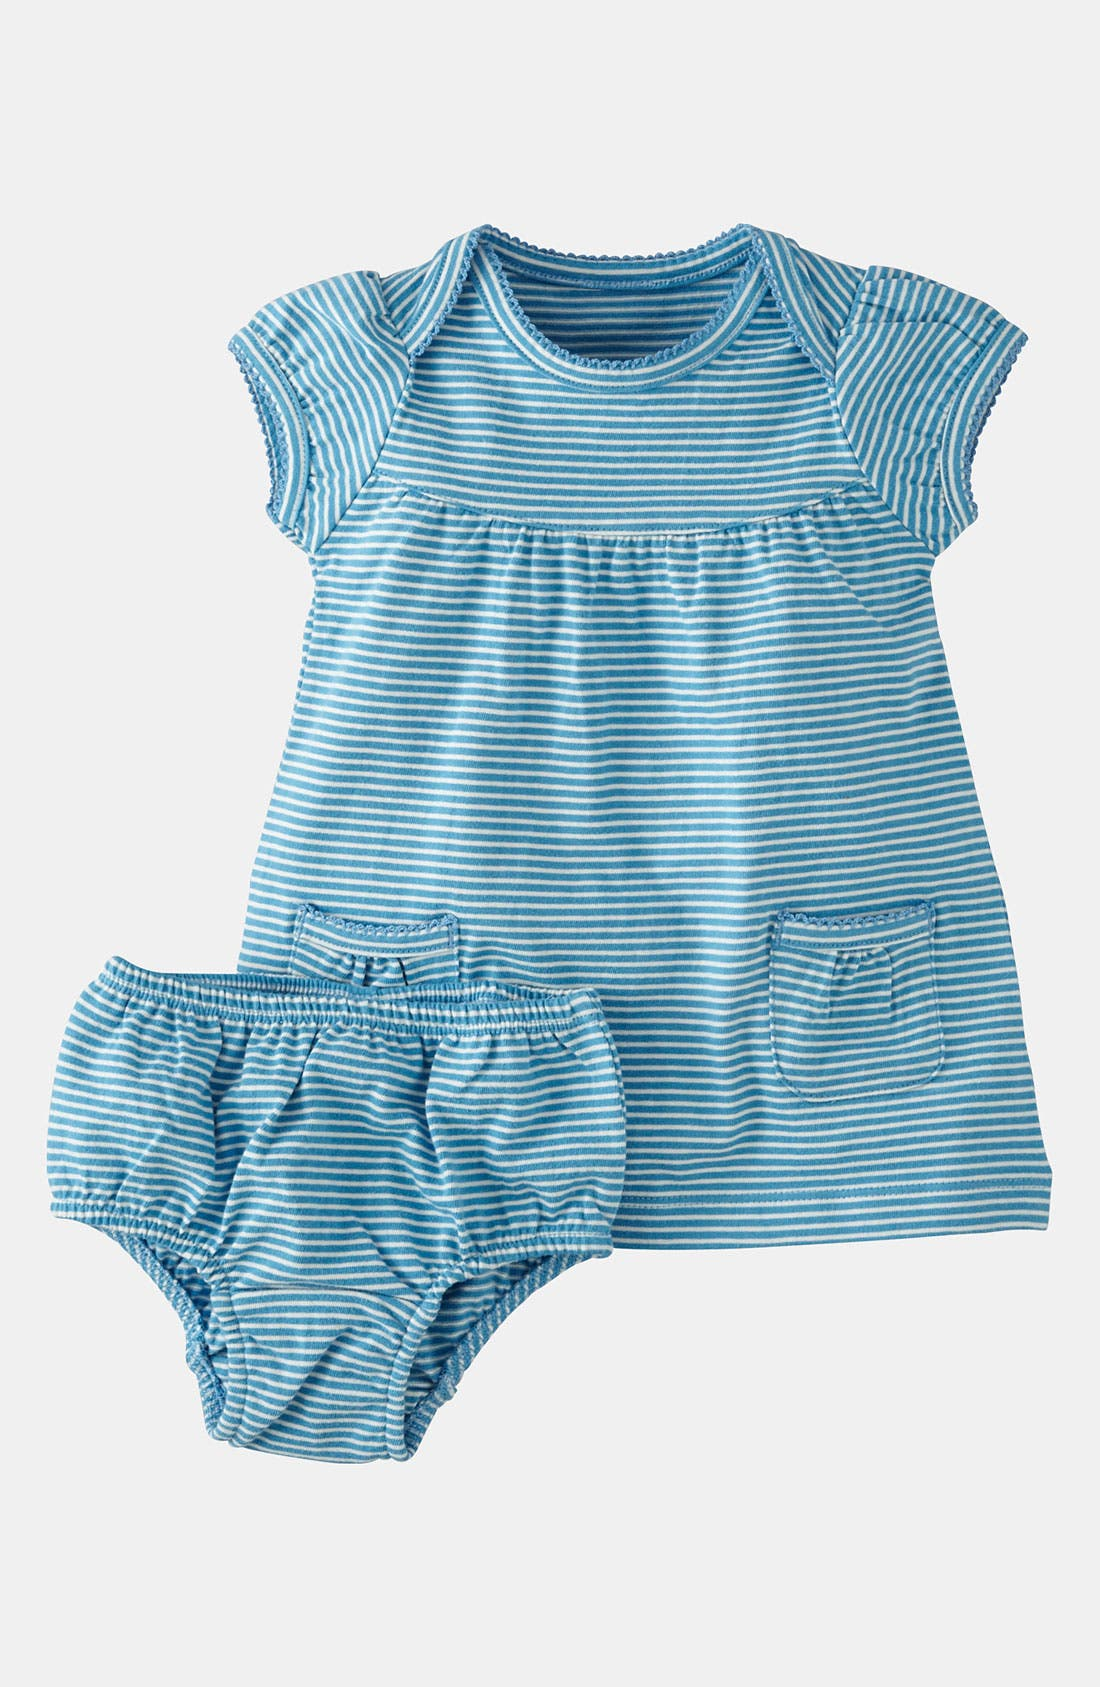 Main Image - Mini Boden 'Simple' Jersey Dress & Bloomers (Baby)